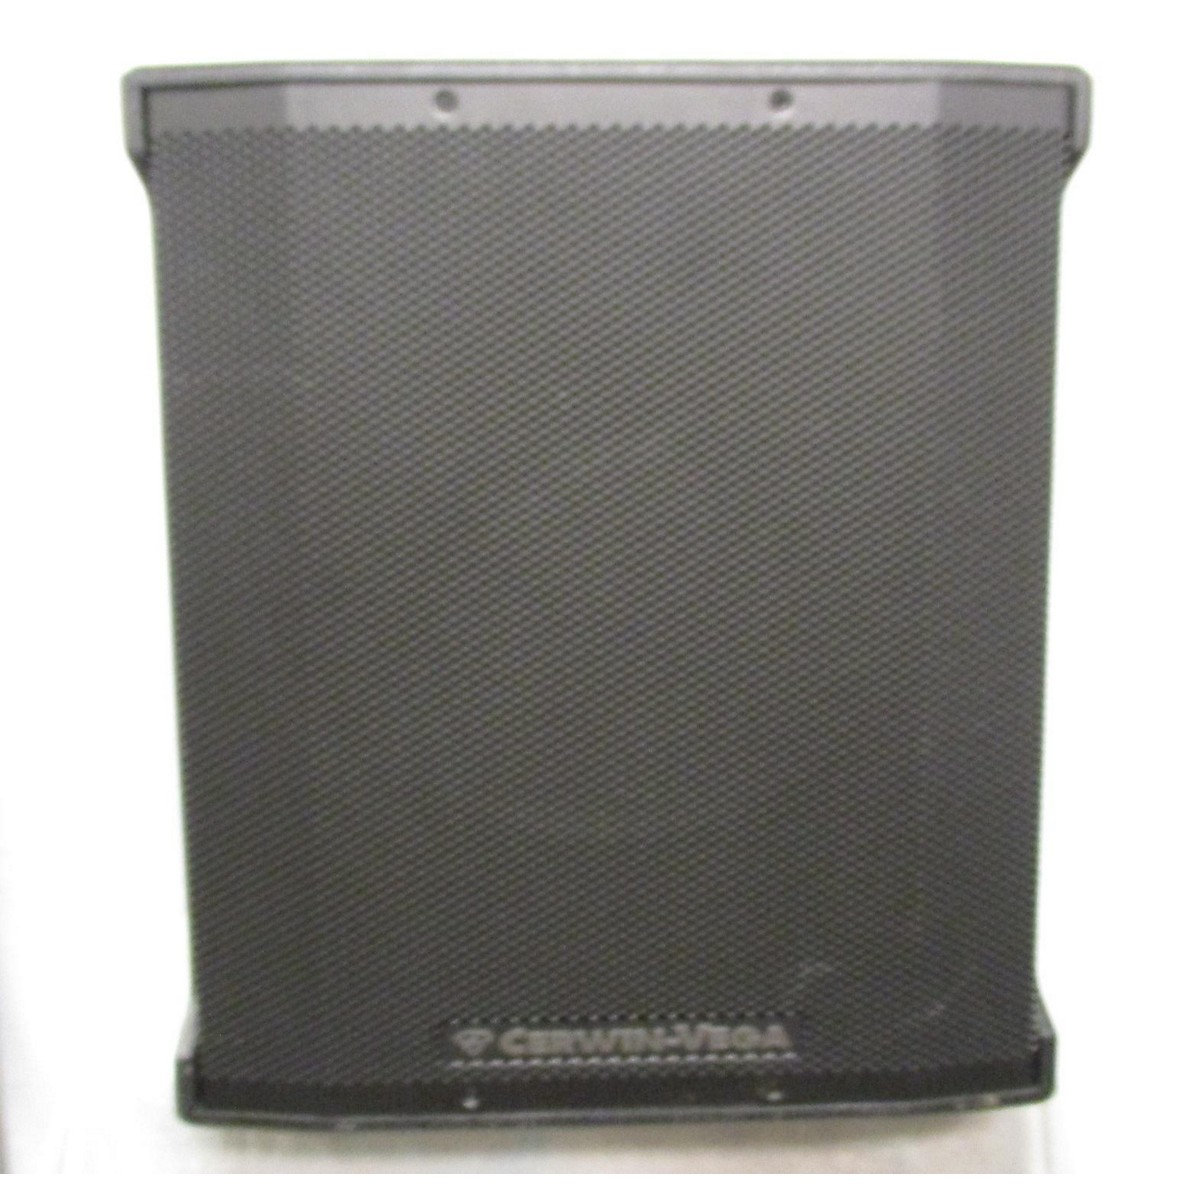 Cerwin-Vega CVE 18 S Powered Subwoofer